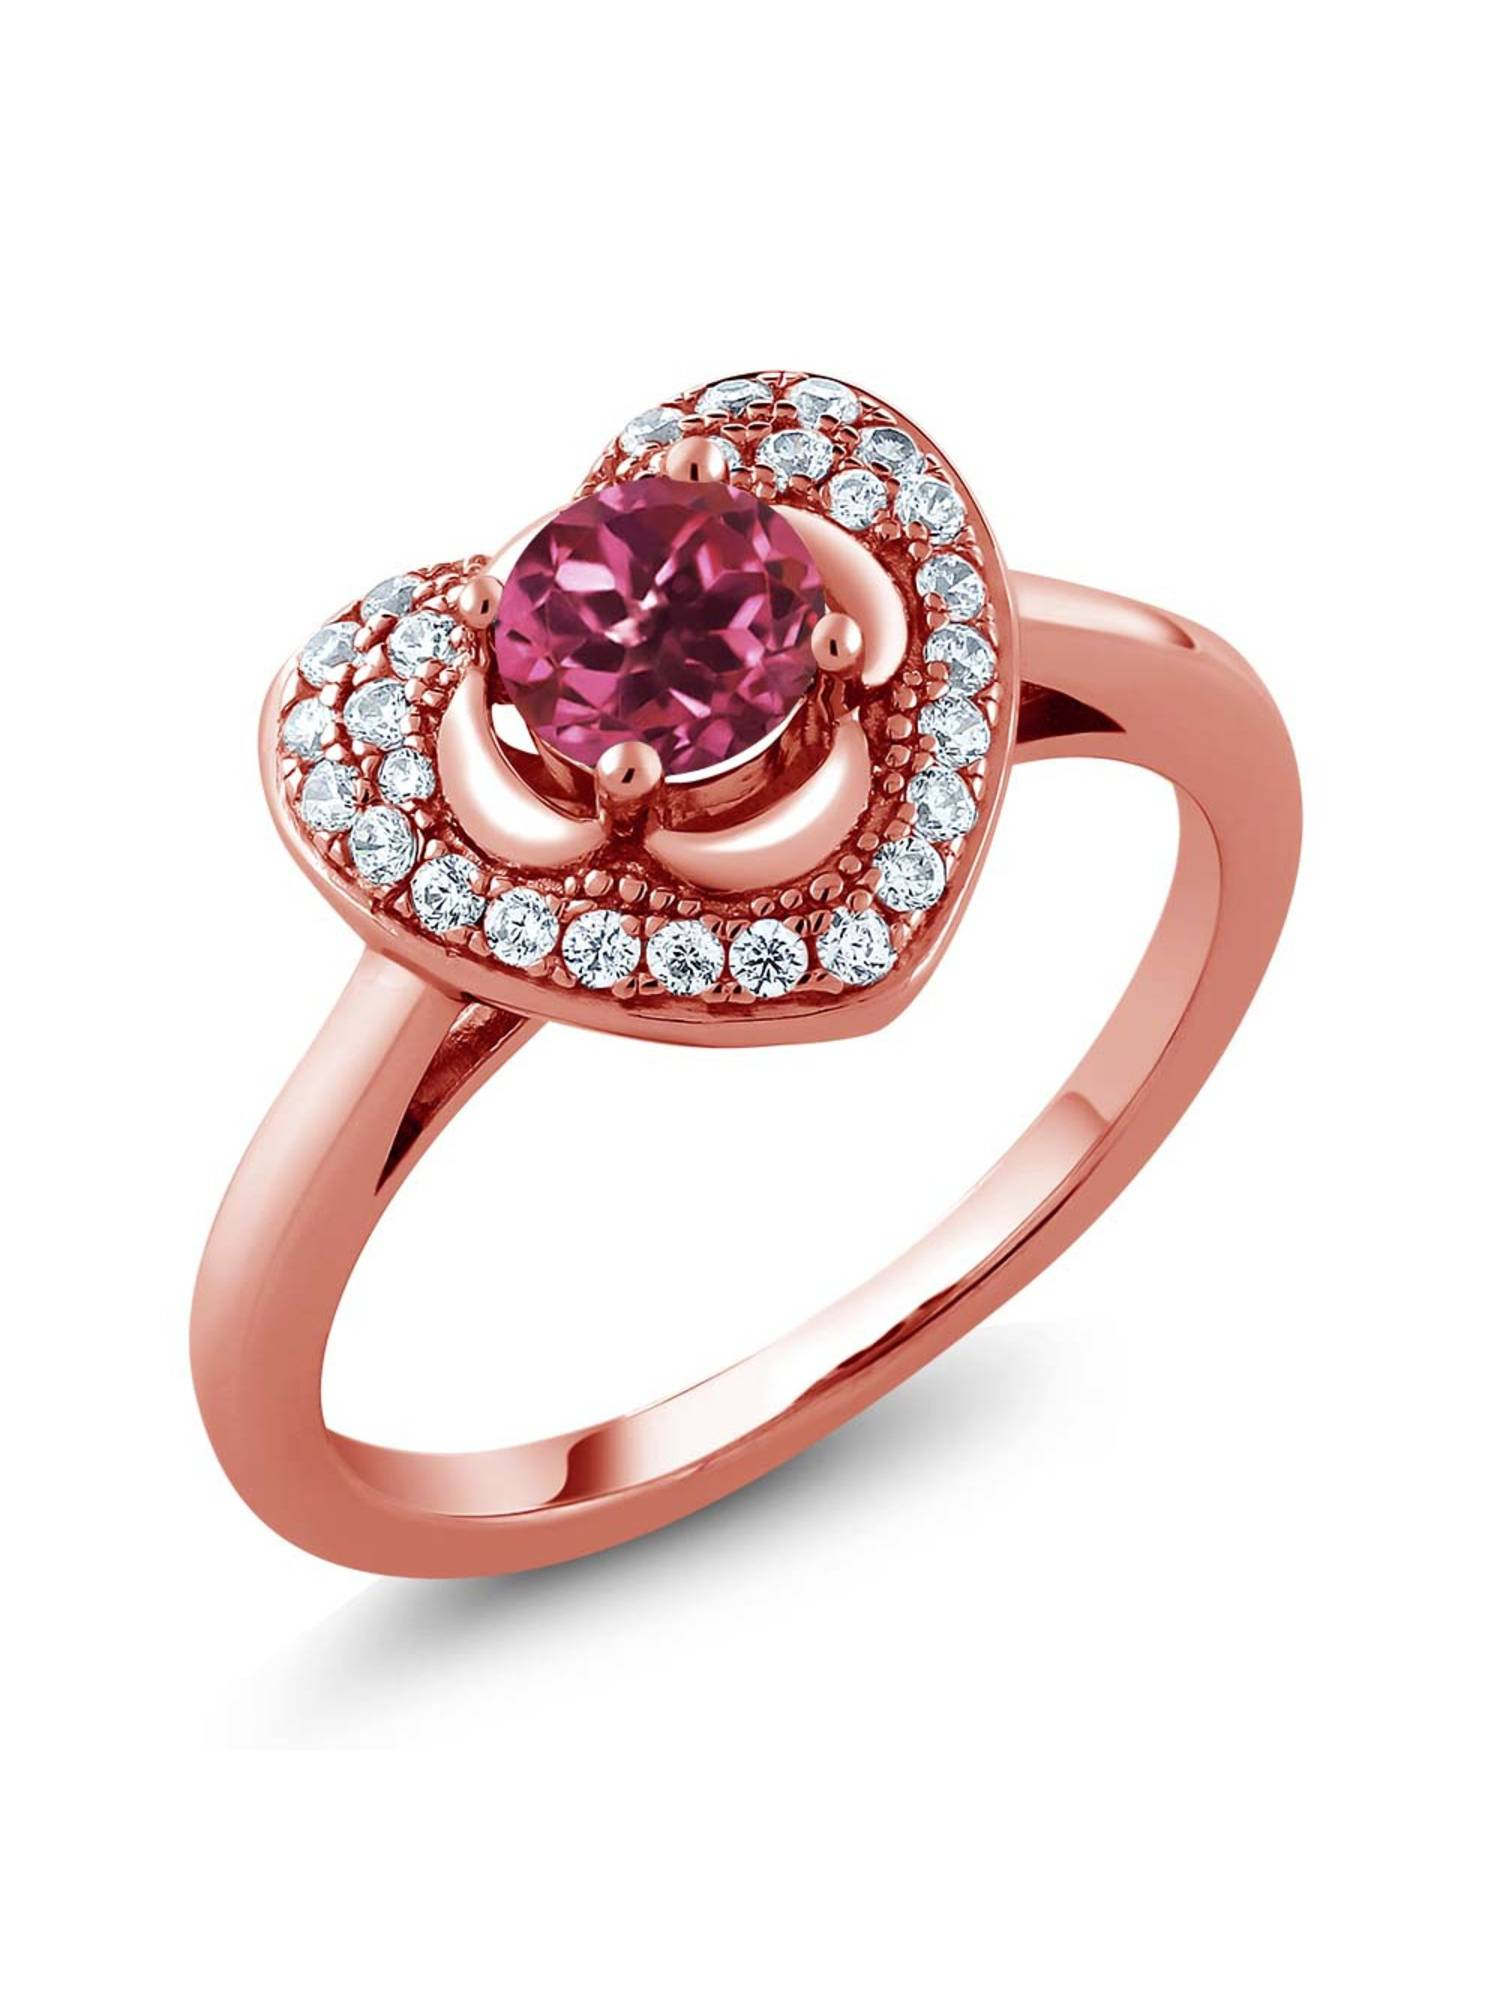 0.77 Ct Round Pink Tourmaline AAA 18K Rose Gold Plated Silver Heart Ring by